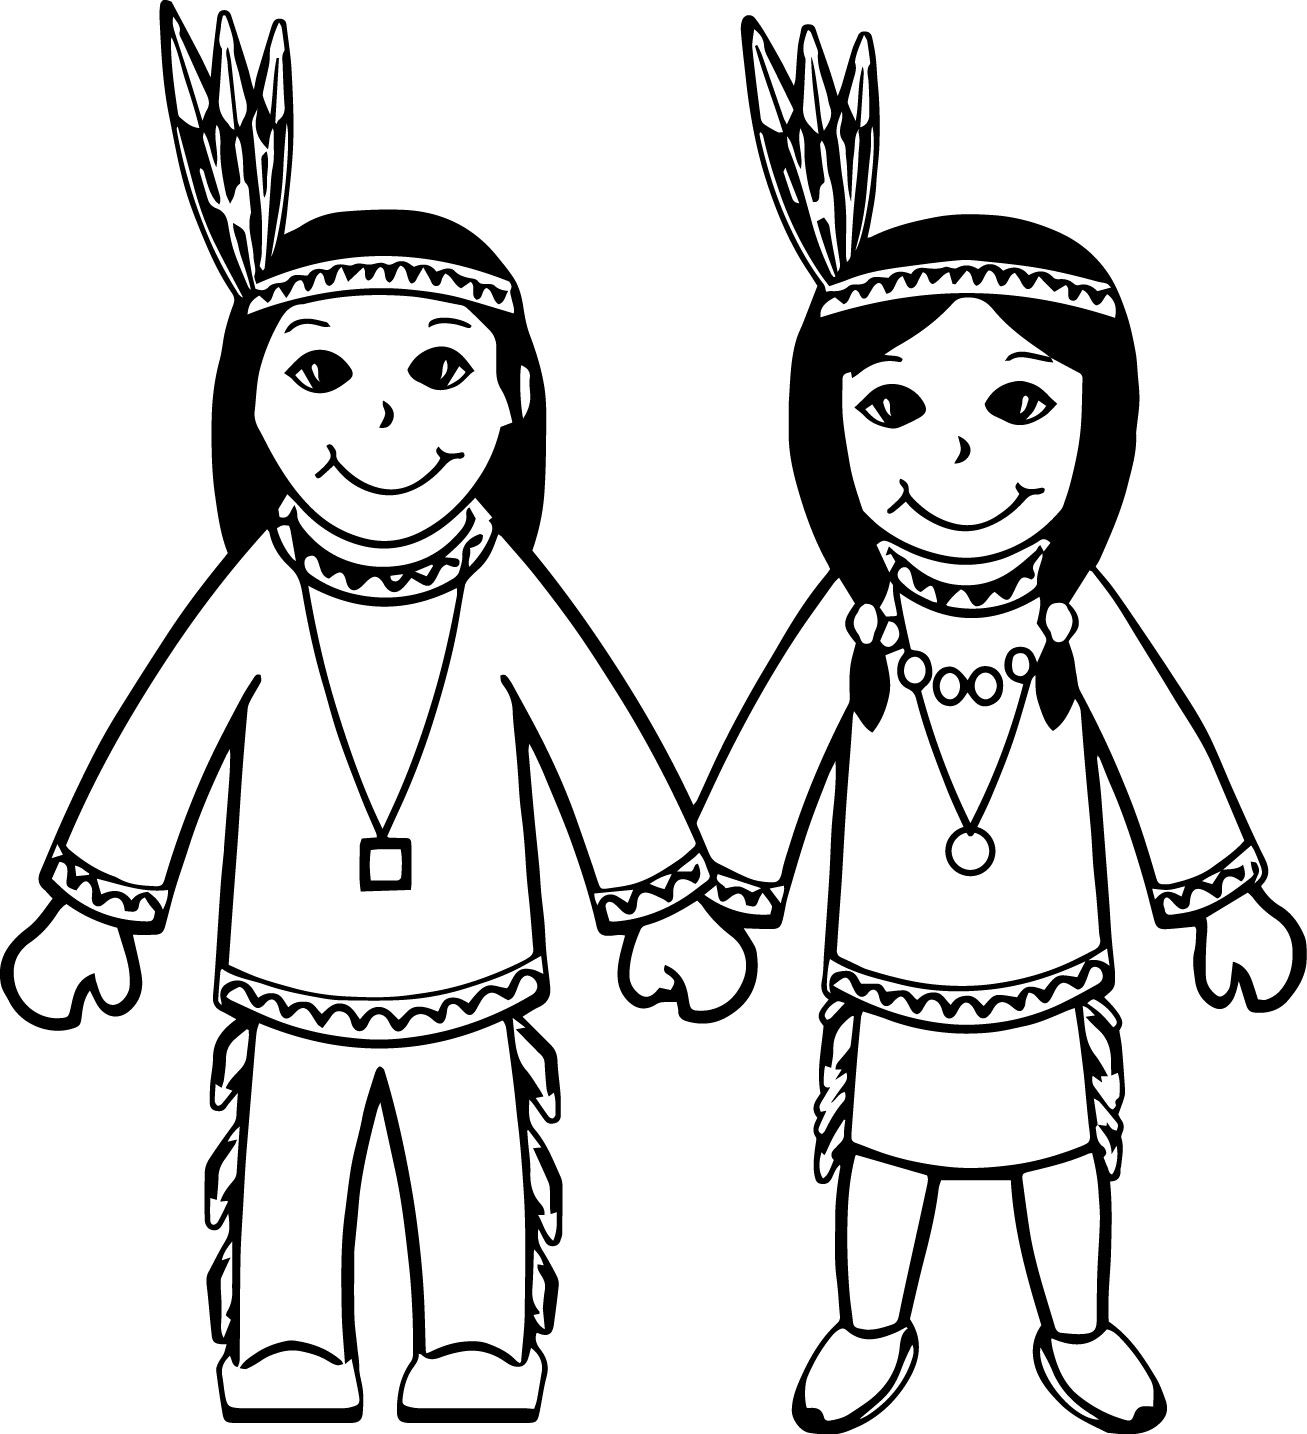 Awesome American Indian Cartoon Boy And Girl Coloring Page